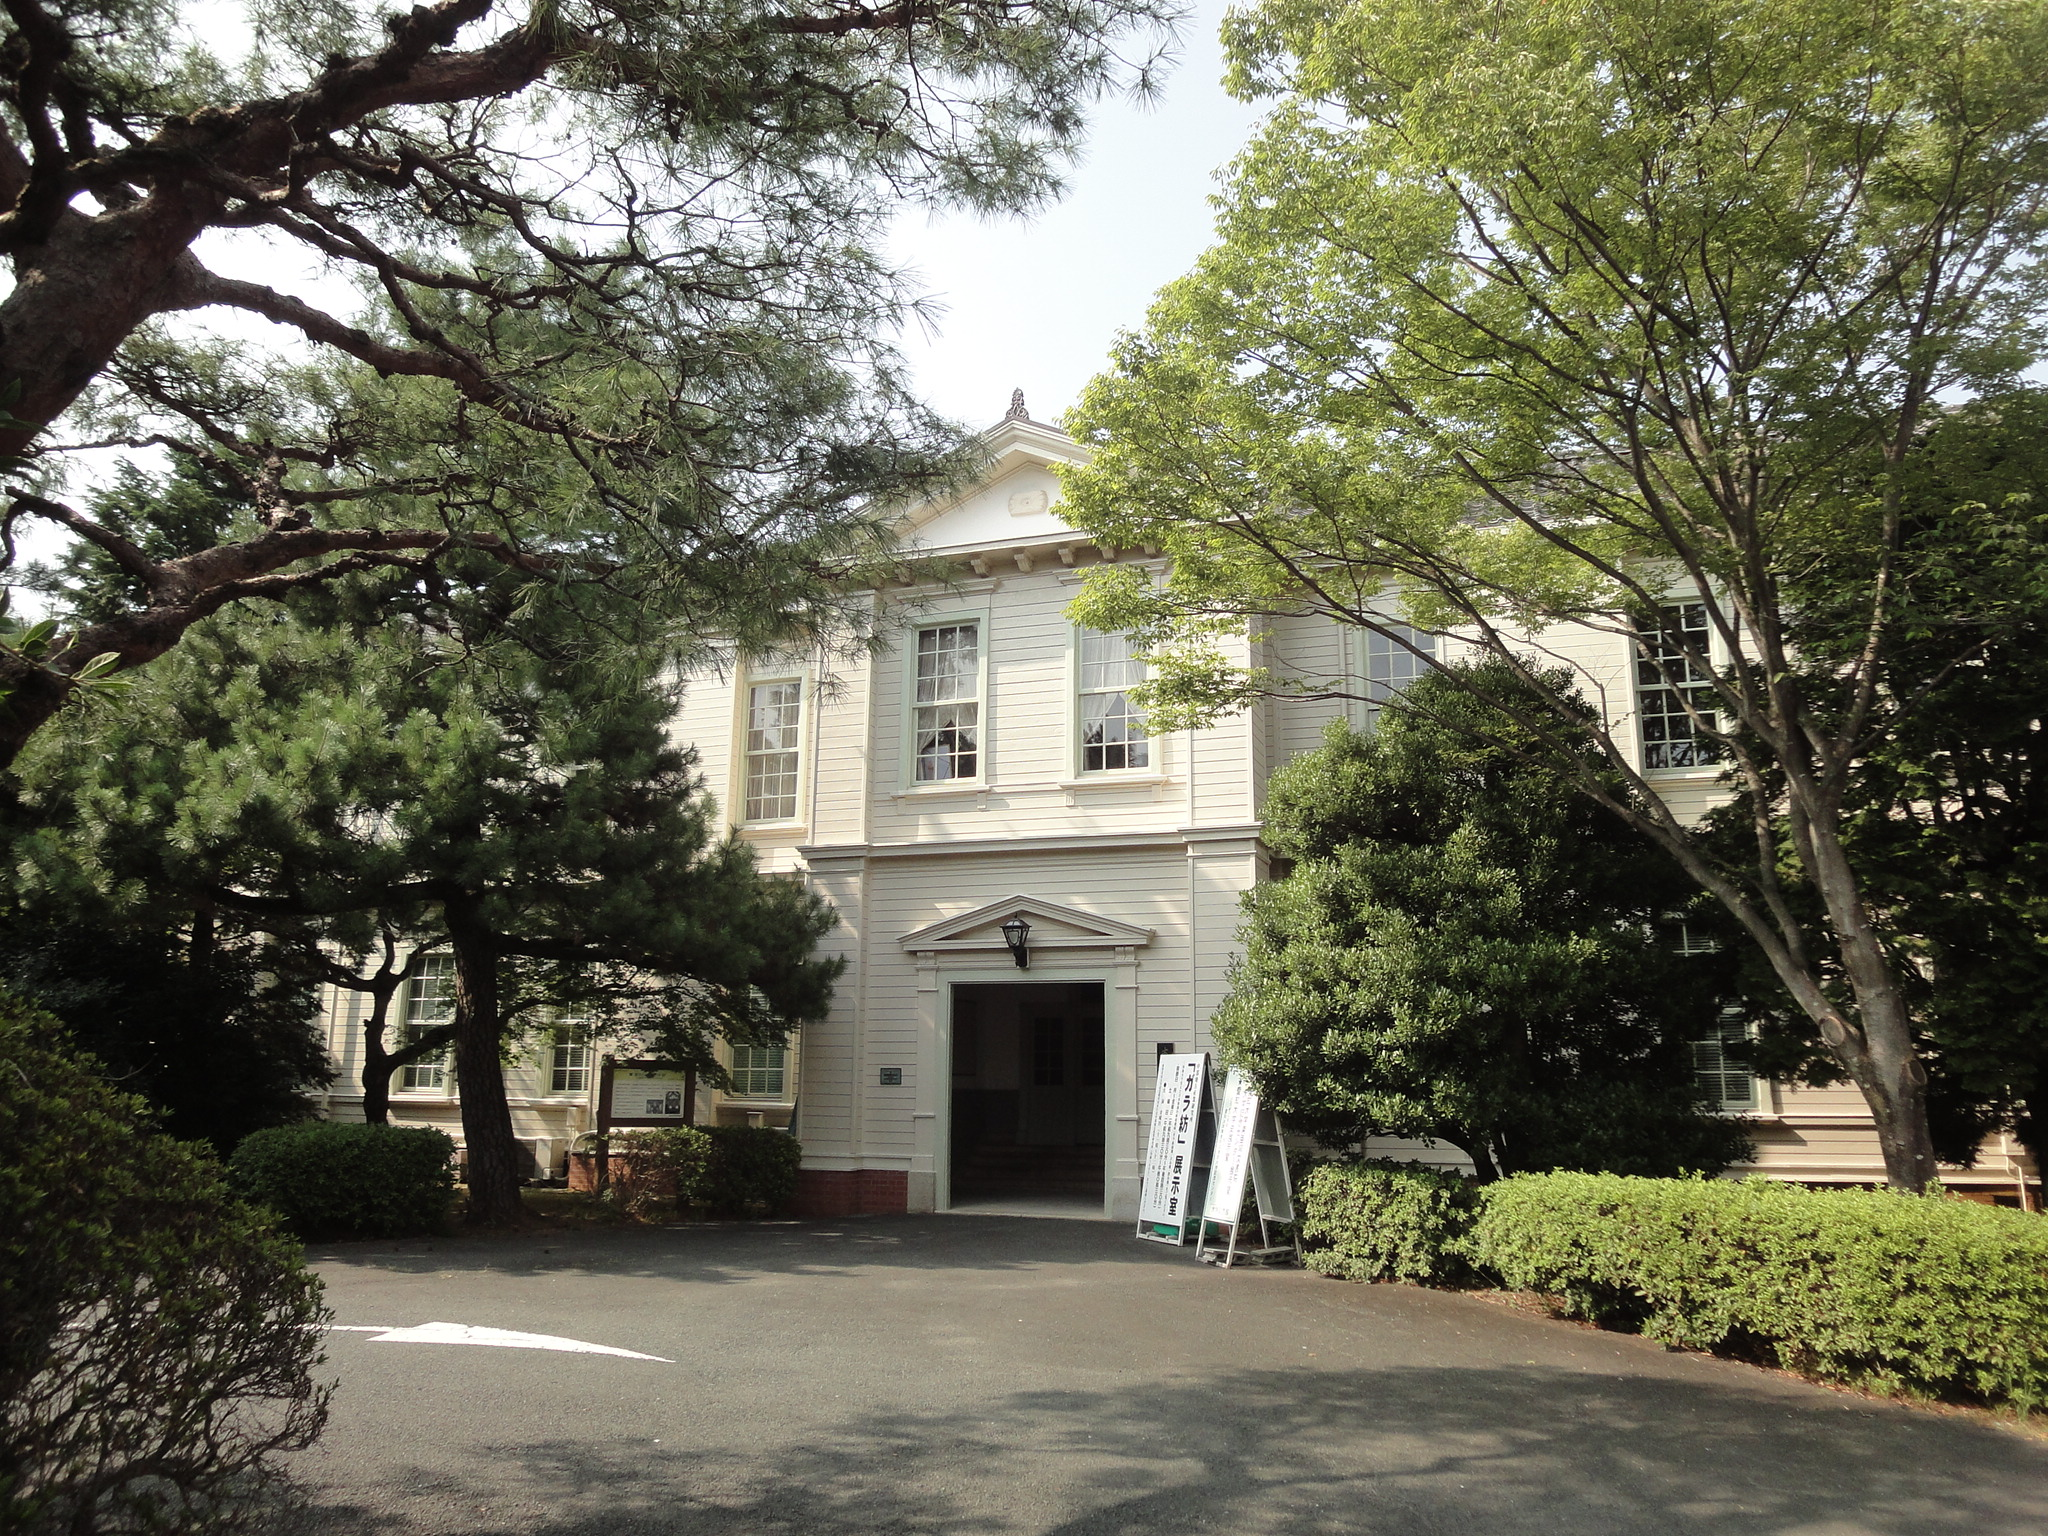 7%2f71%2funiversity memorial hall of aichi university 100822